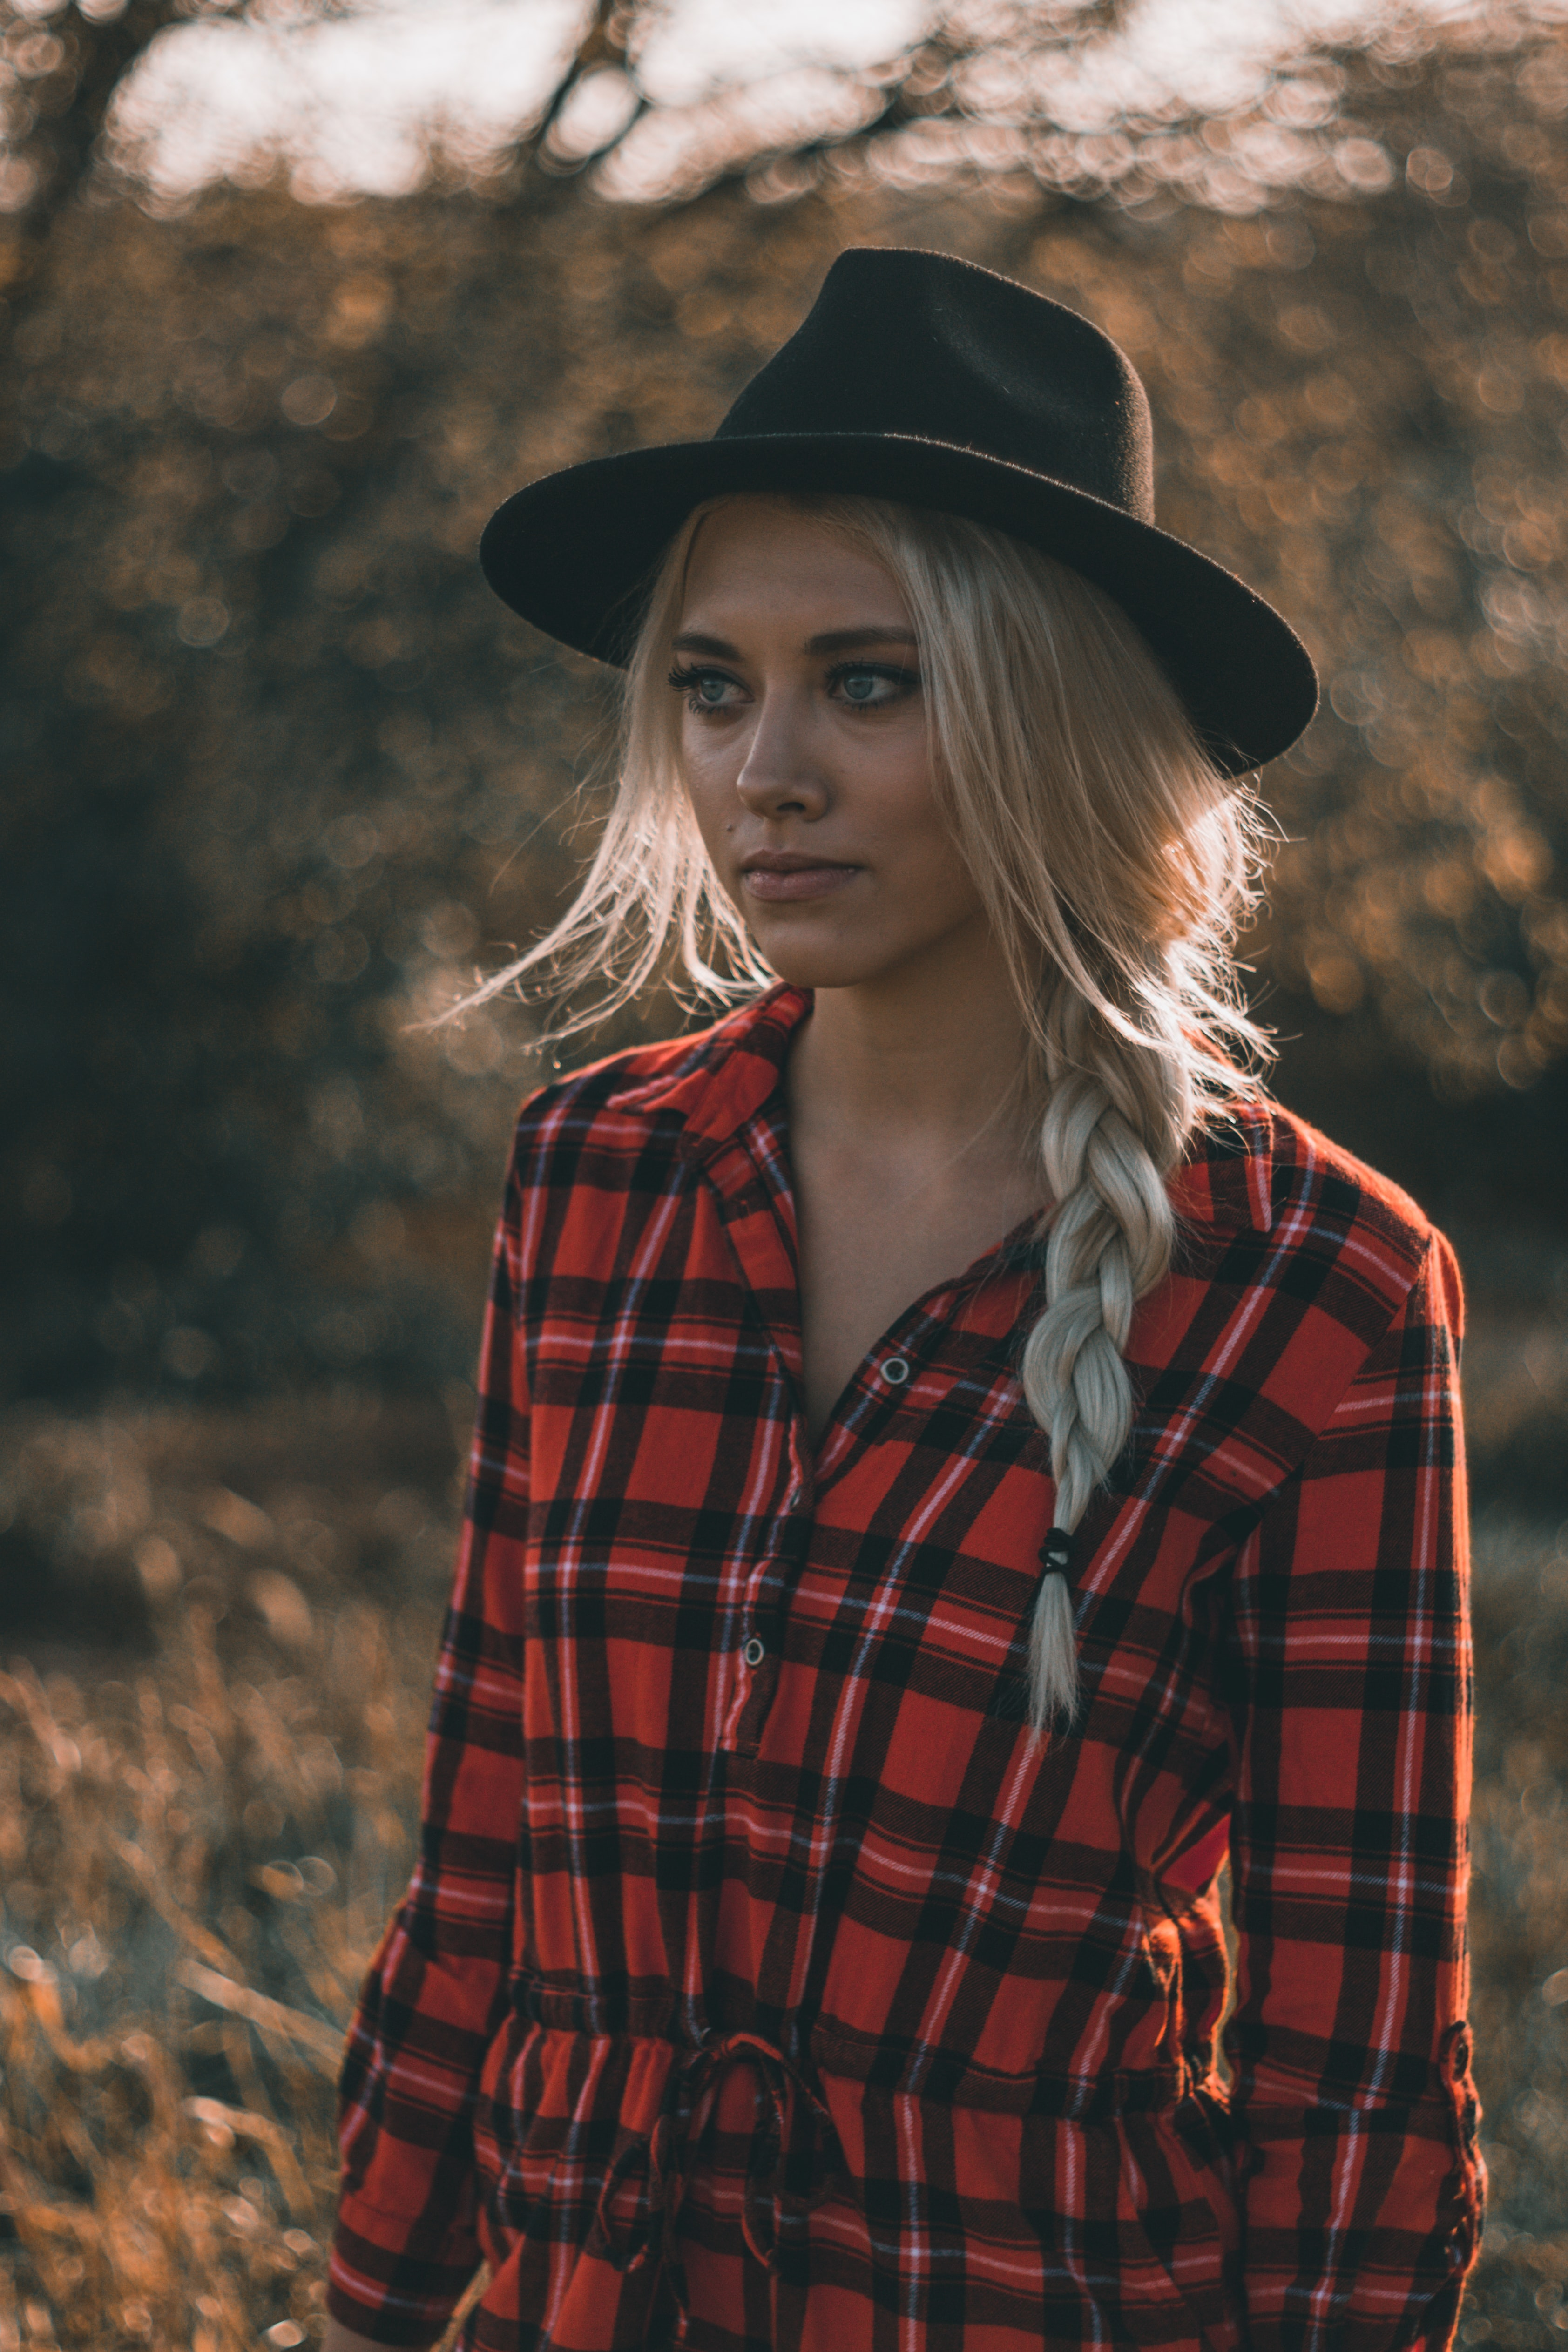 bokeh photography of woman wearing trilby hat and sports shirt